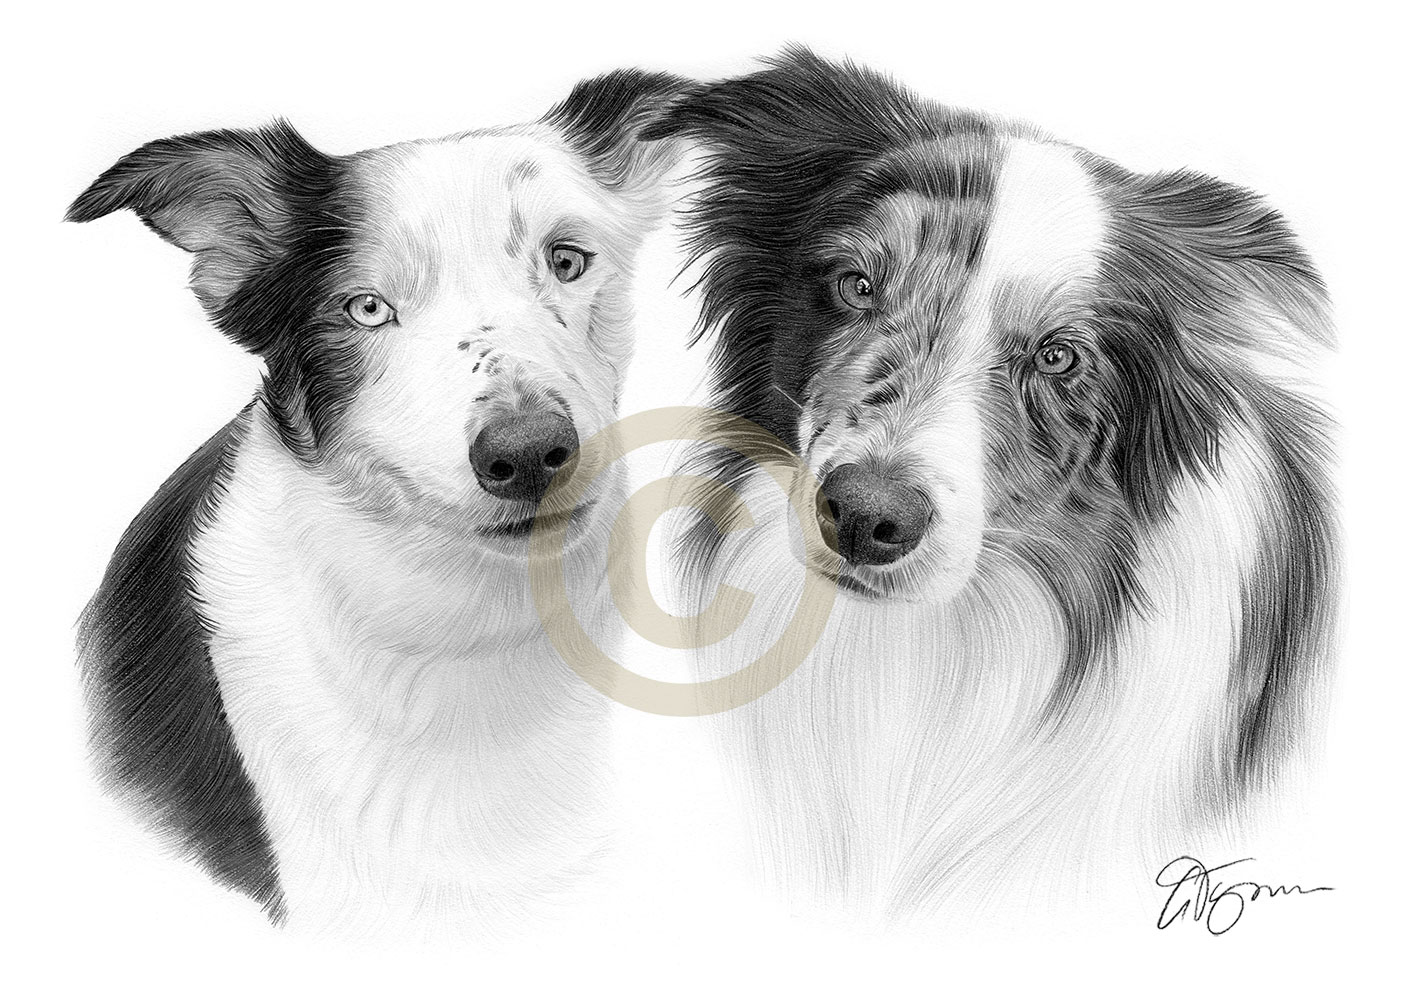 Pet portrait commission of two blue merle border collies called Juno and Ollie by artist Gary Tymon